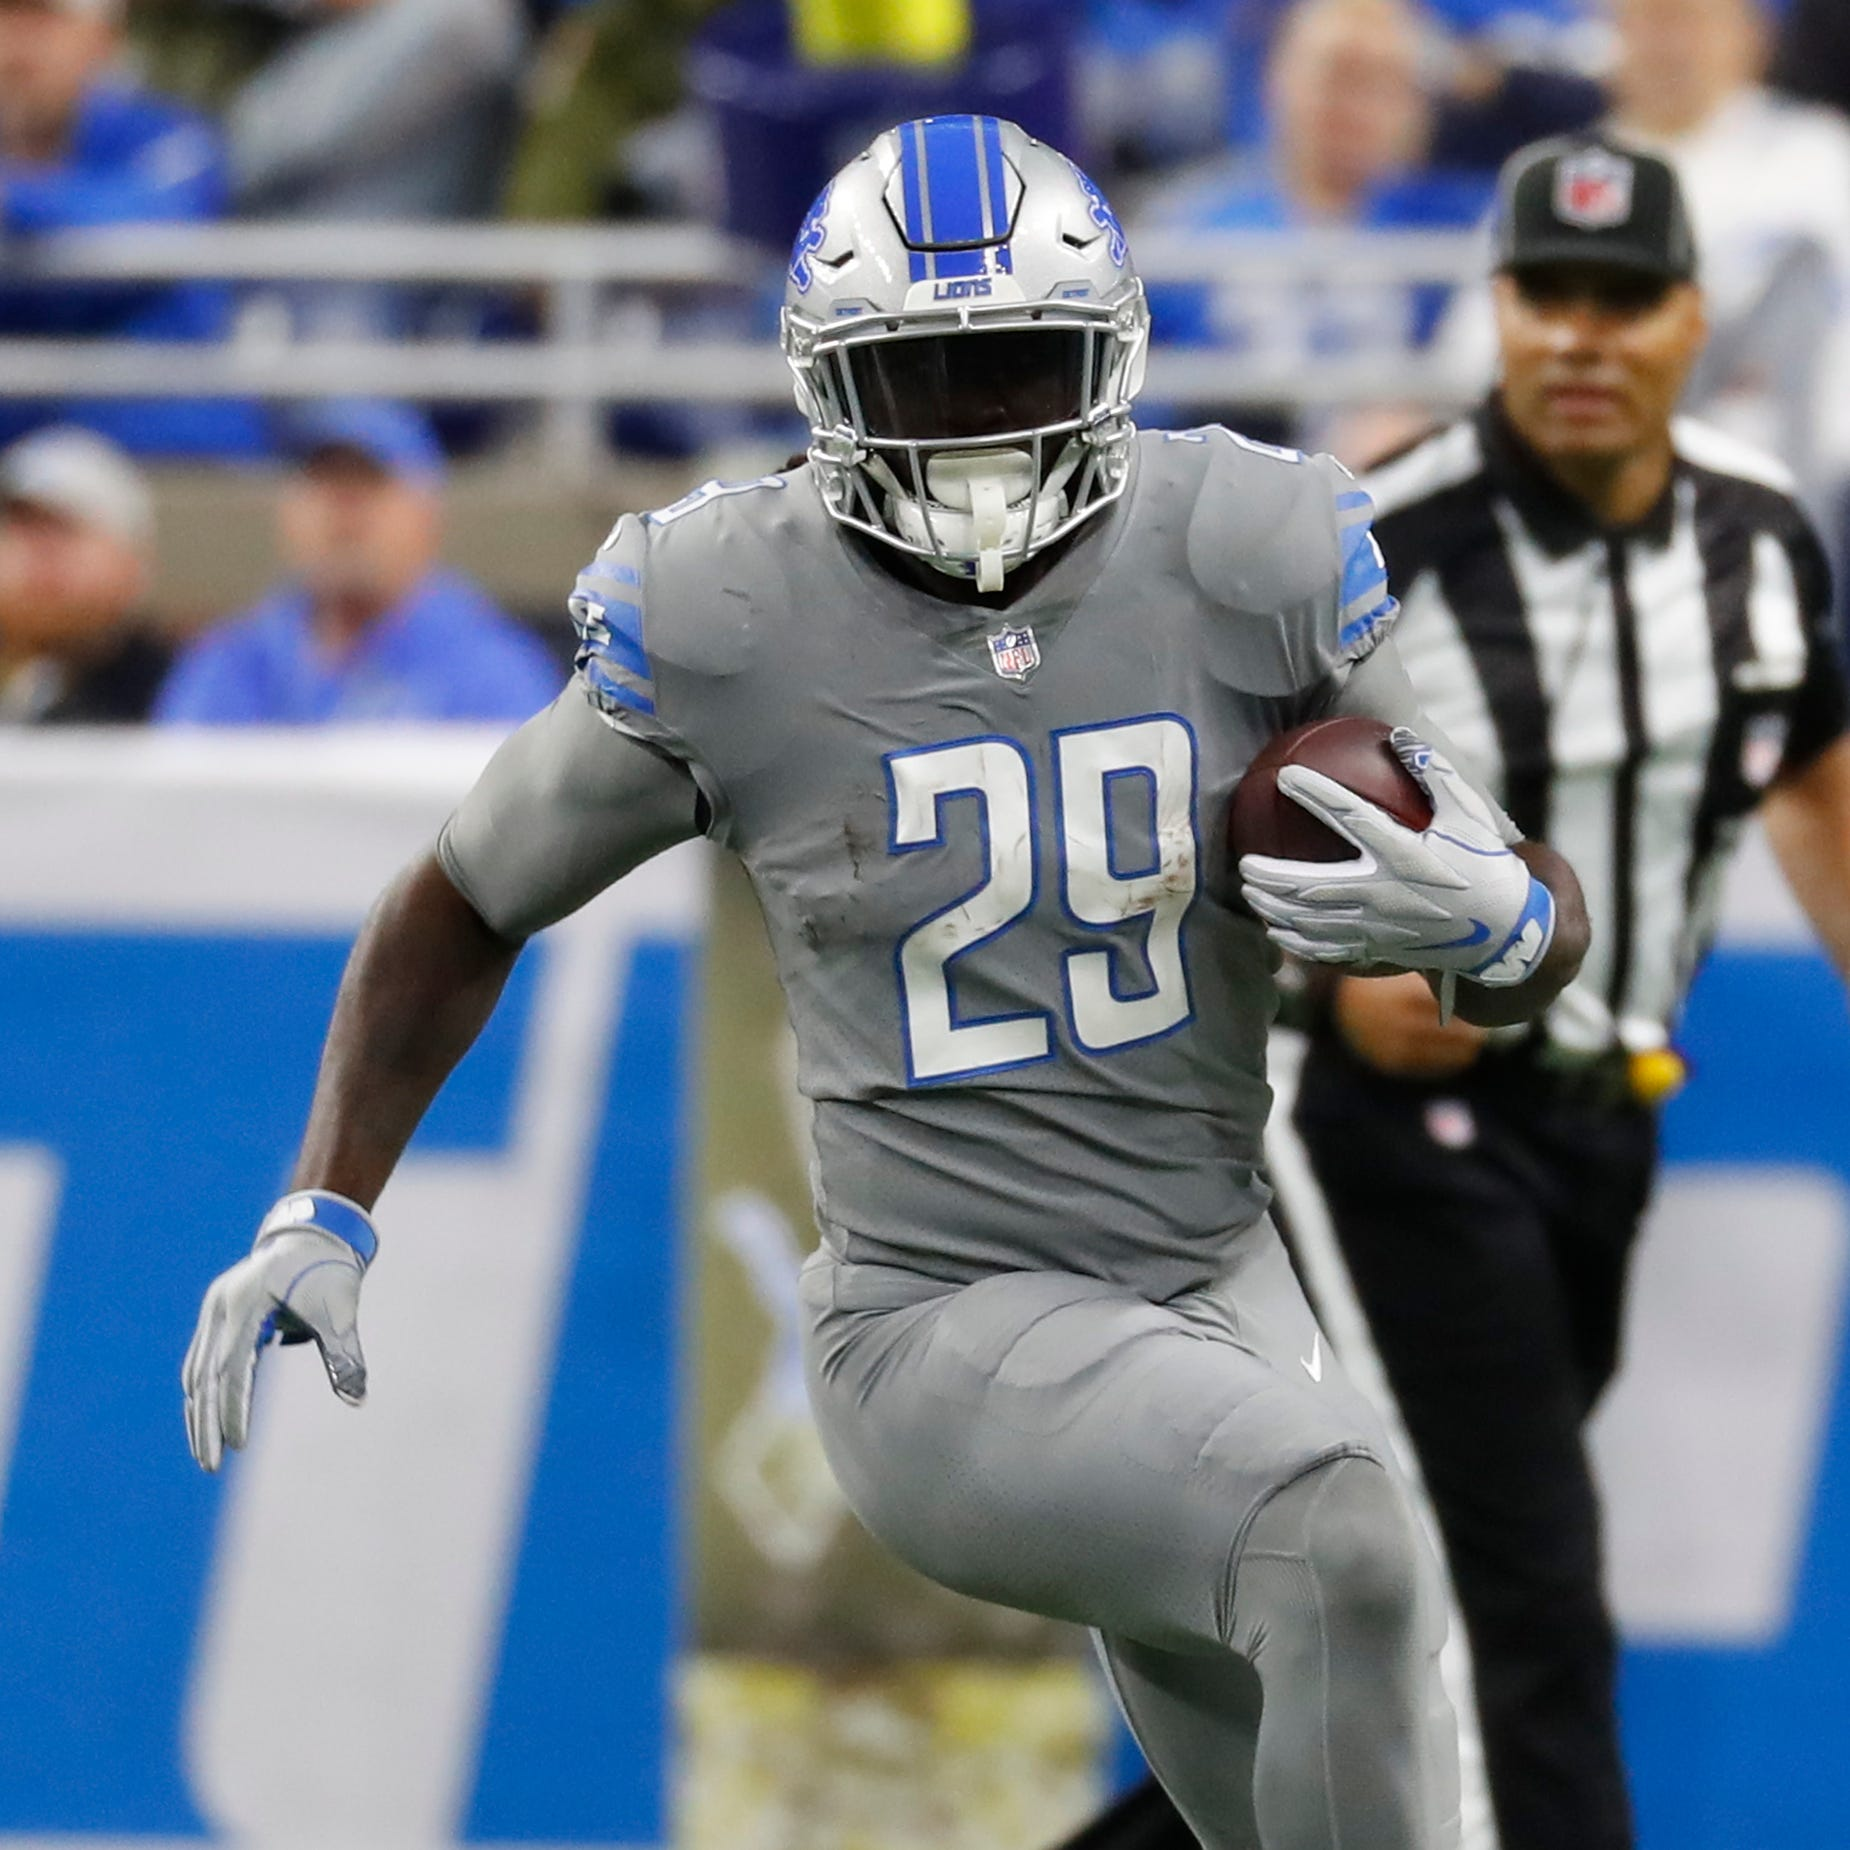 Can Lions' LeGarrette Blount have another 'legendary' Thanksgiving?